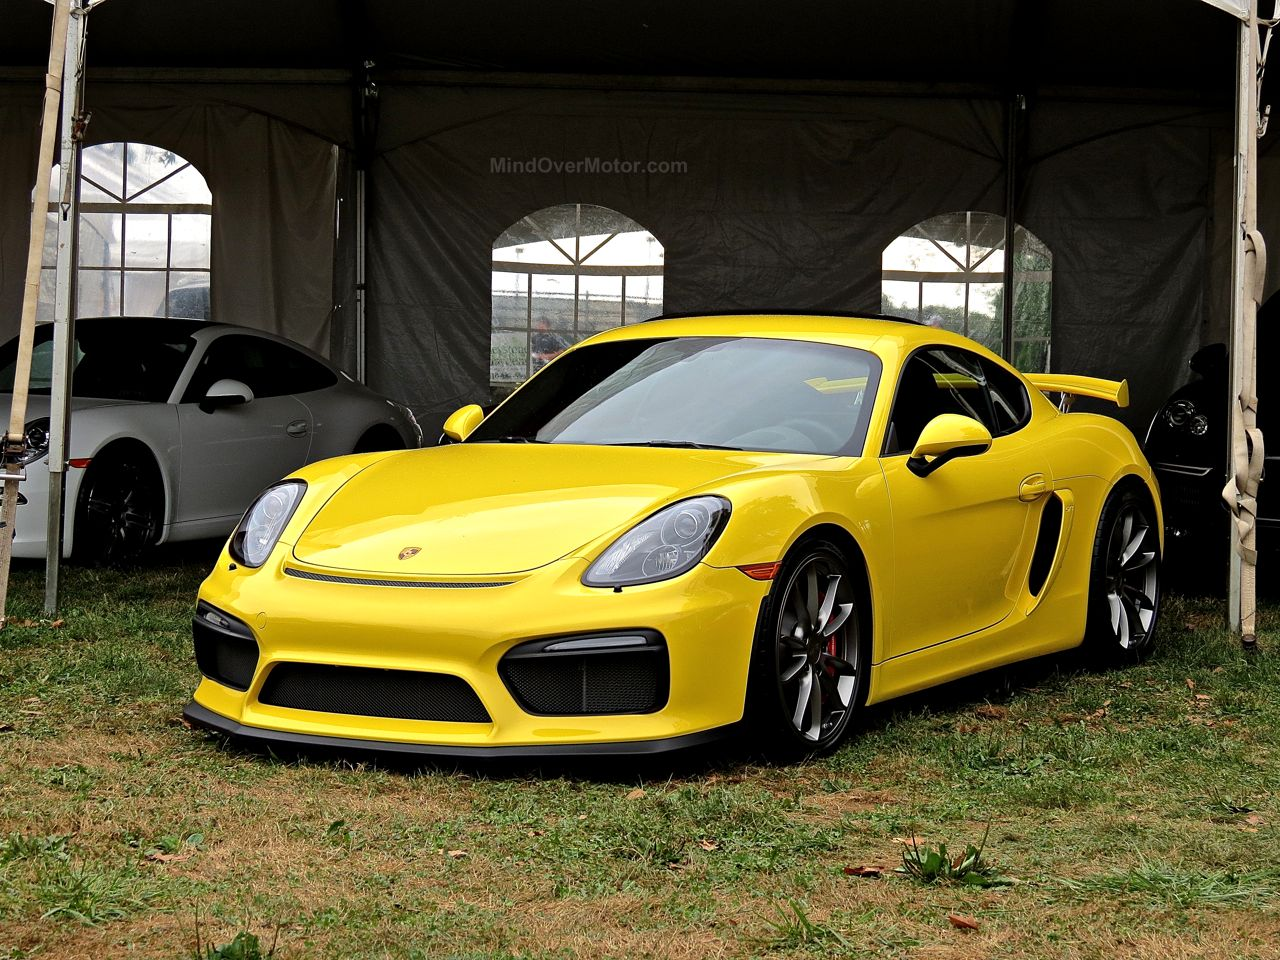 Radnor Hunt Porsche Cayman GT4 Yellow